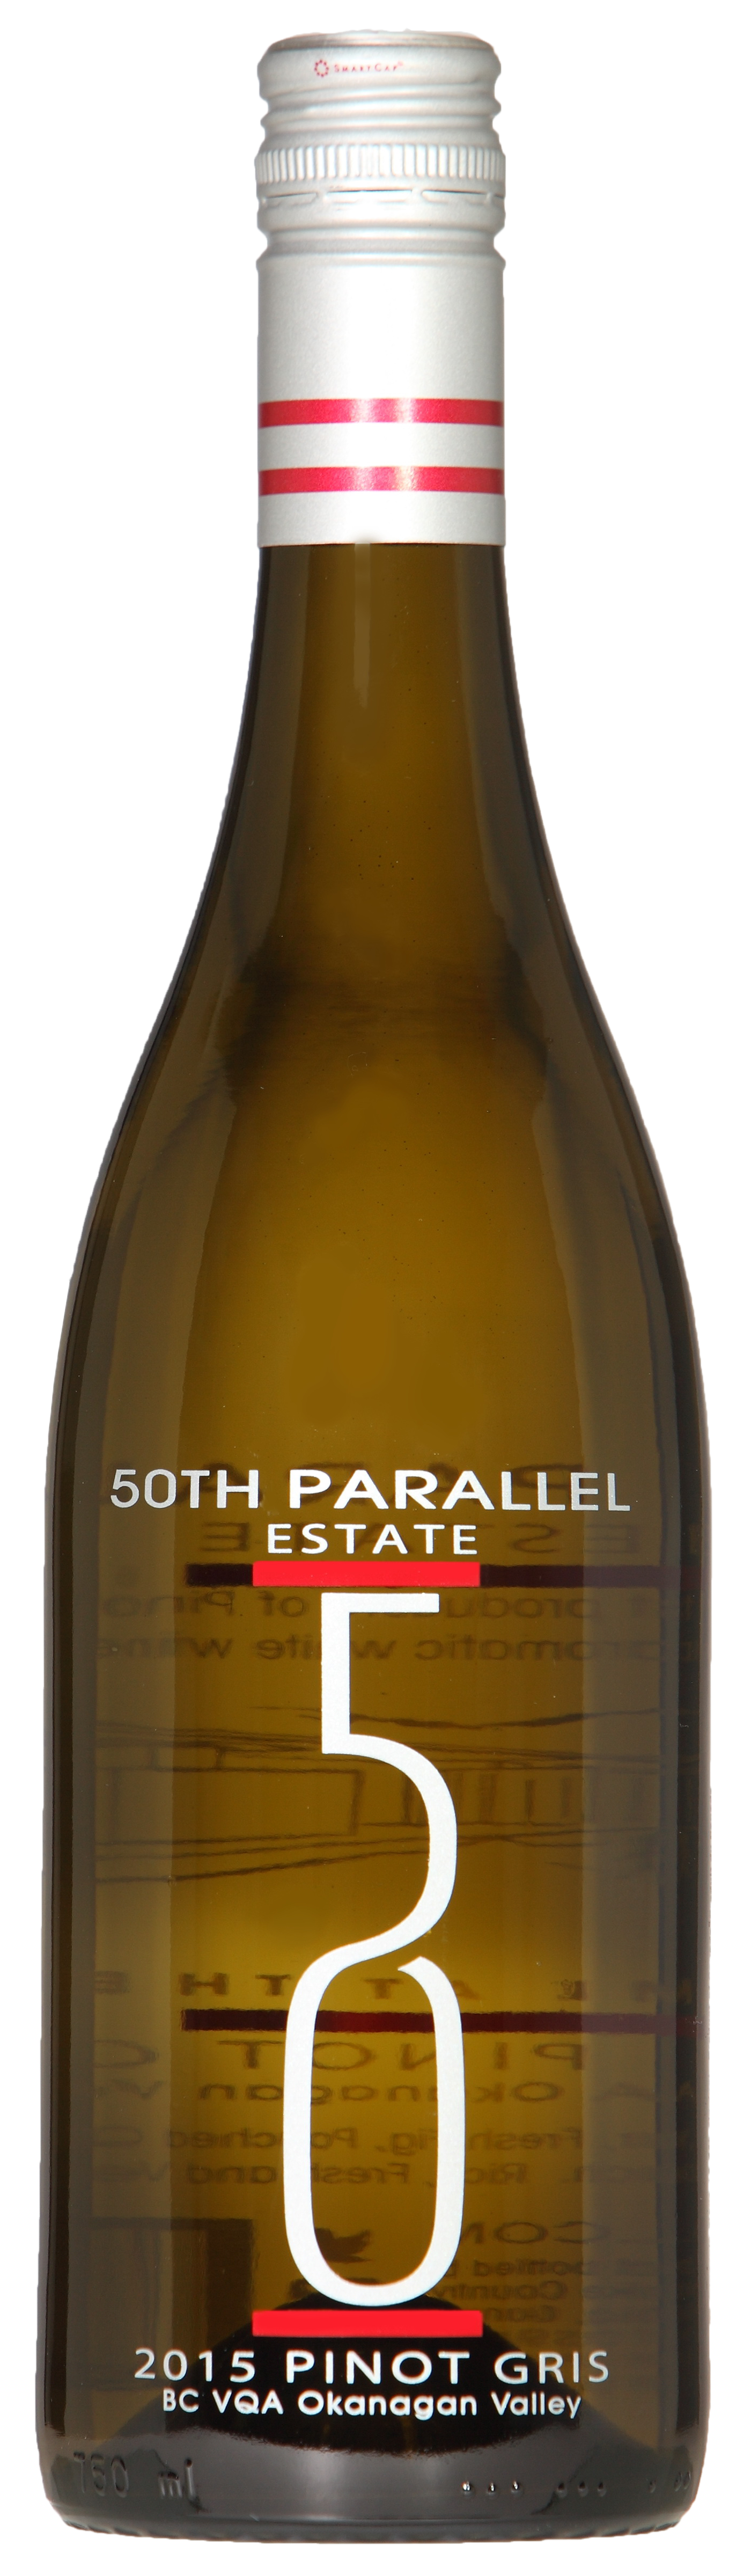 50th Parallel Estate 2015 Pinot Gris